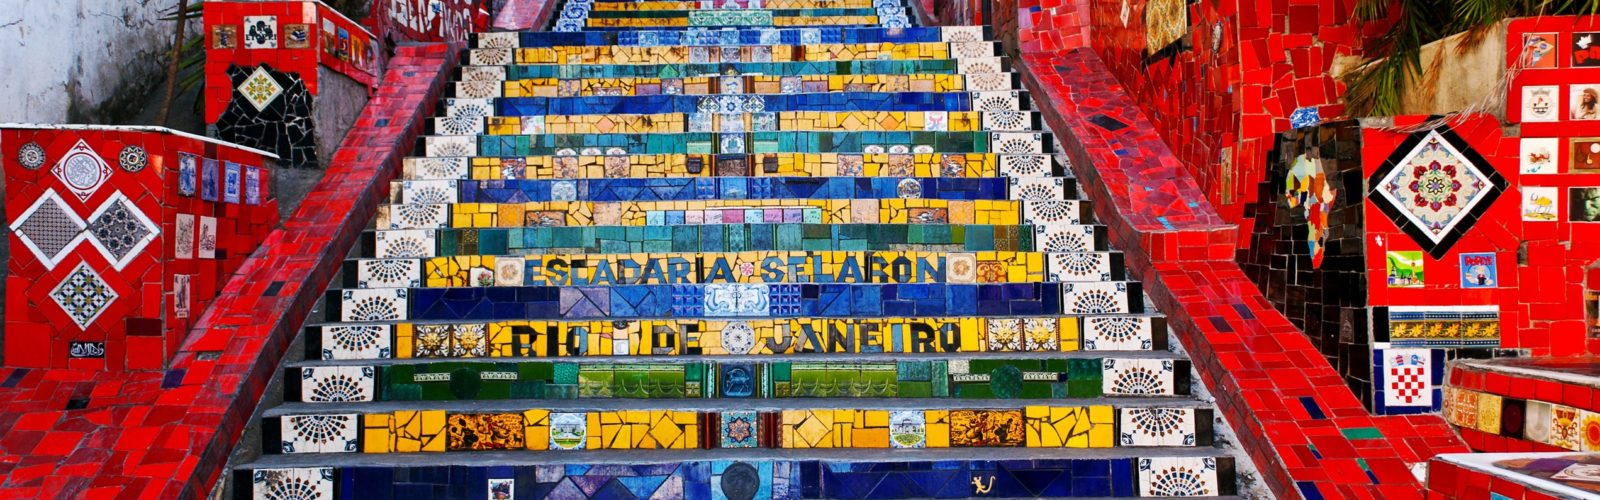 Painted Stairs Rio Brazil